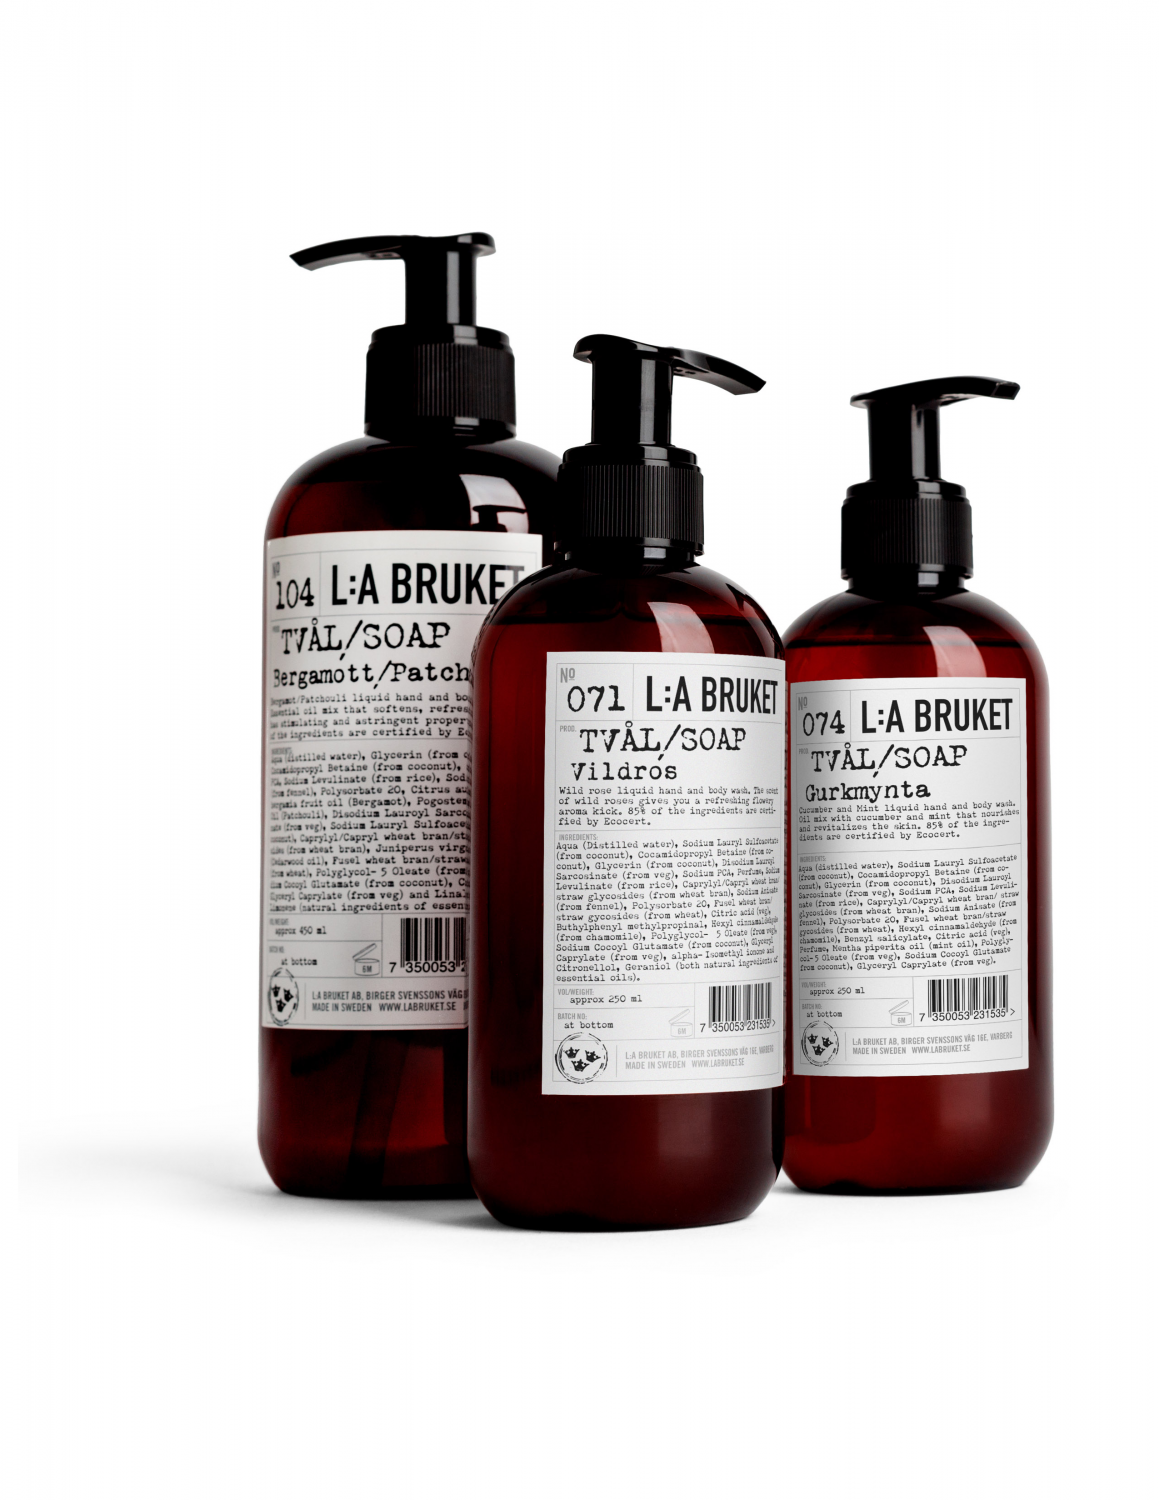 Three brown bottles in a group, containing liquid soap/body wash from L:a Bruket in different sizes.